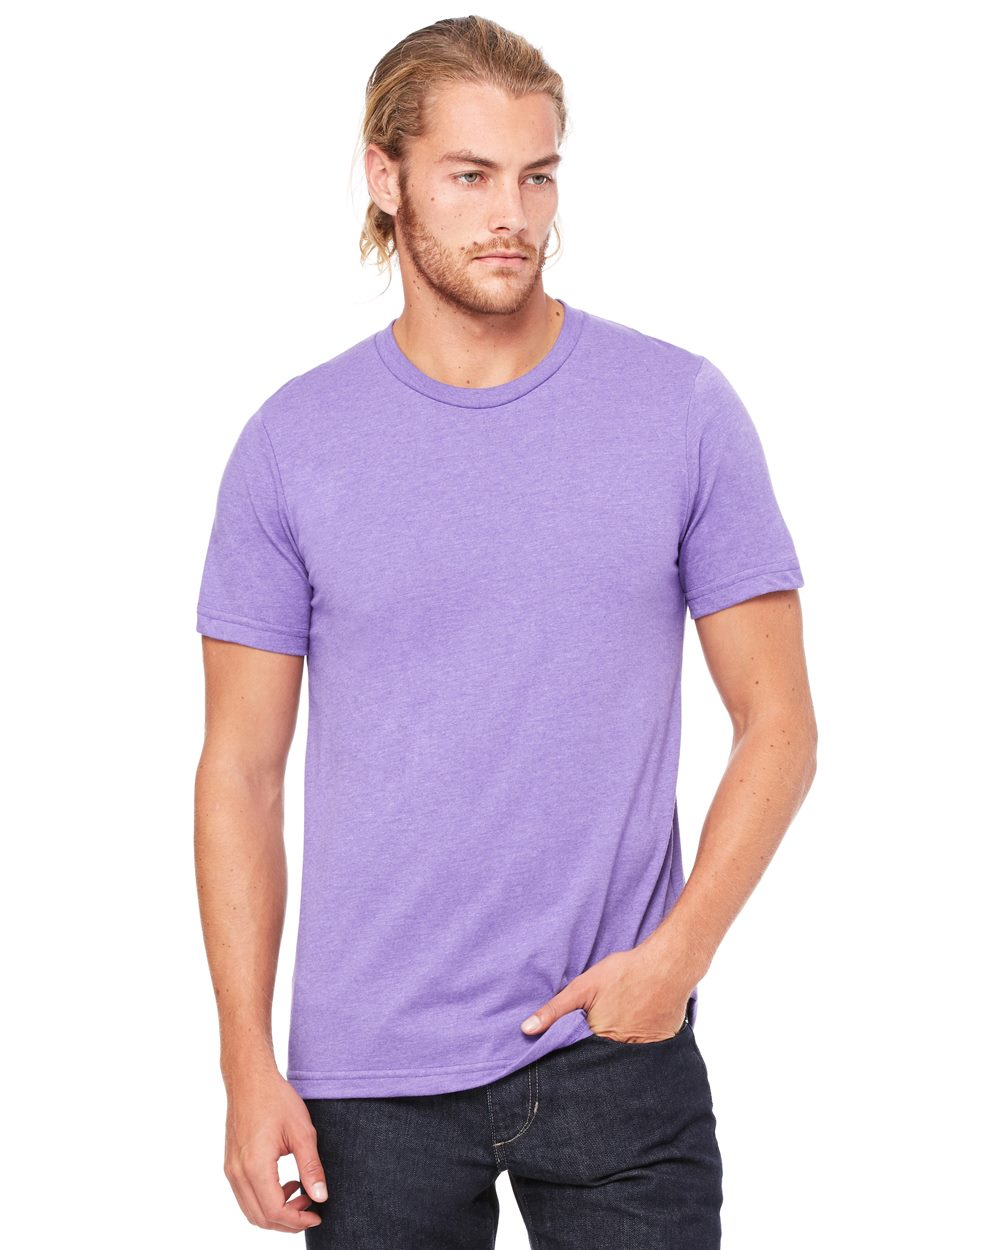 Bella + Canvas Unisex Jersey - 3001                                Starting at $4.50